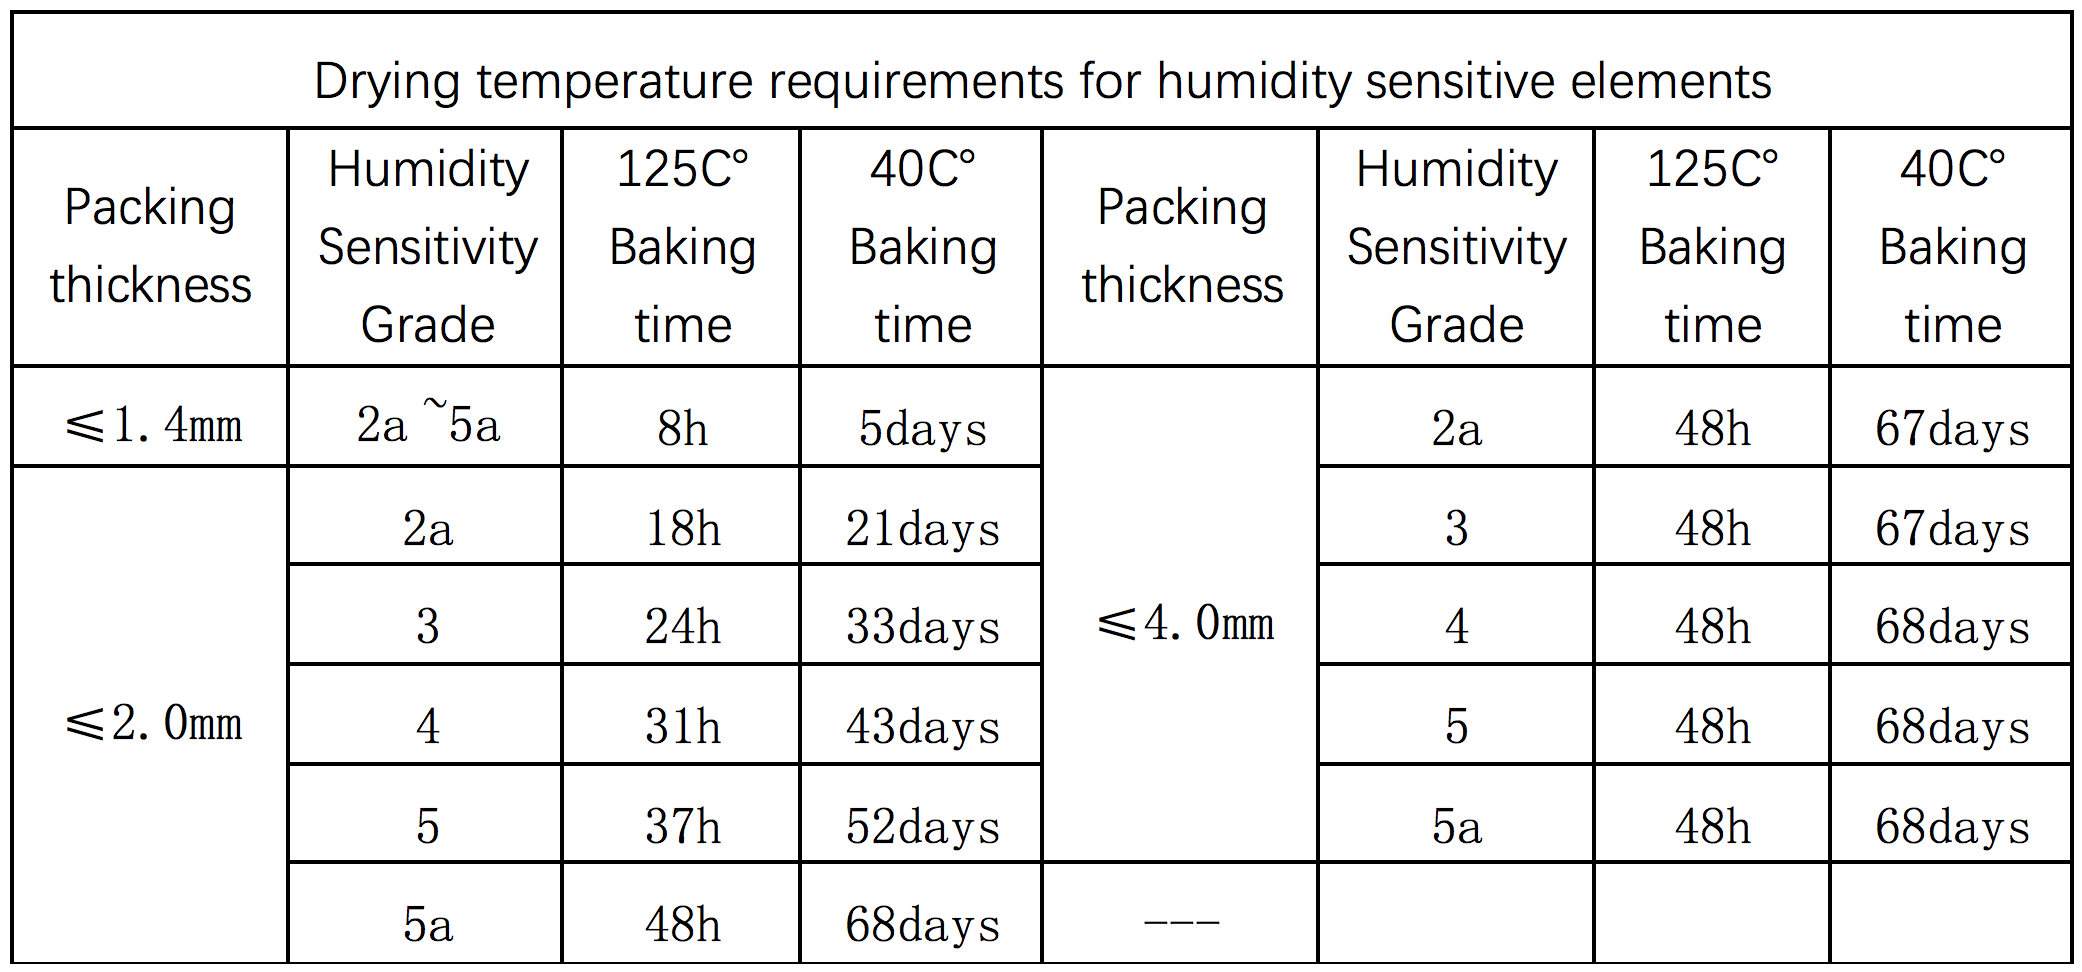 Drying temperature requirements for humidity sensitive elements